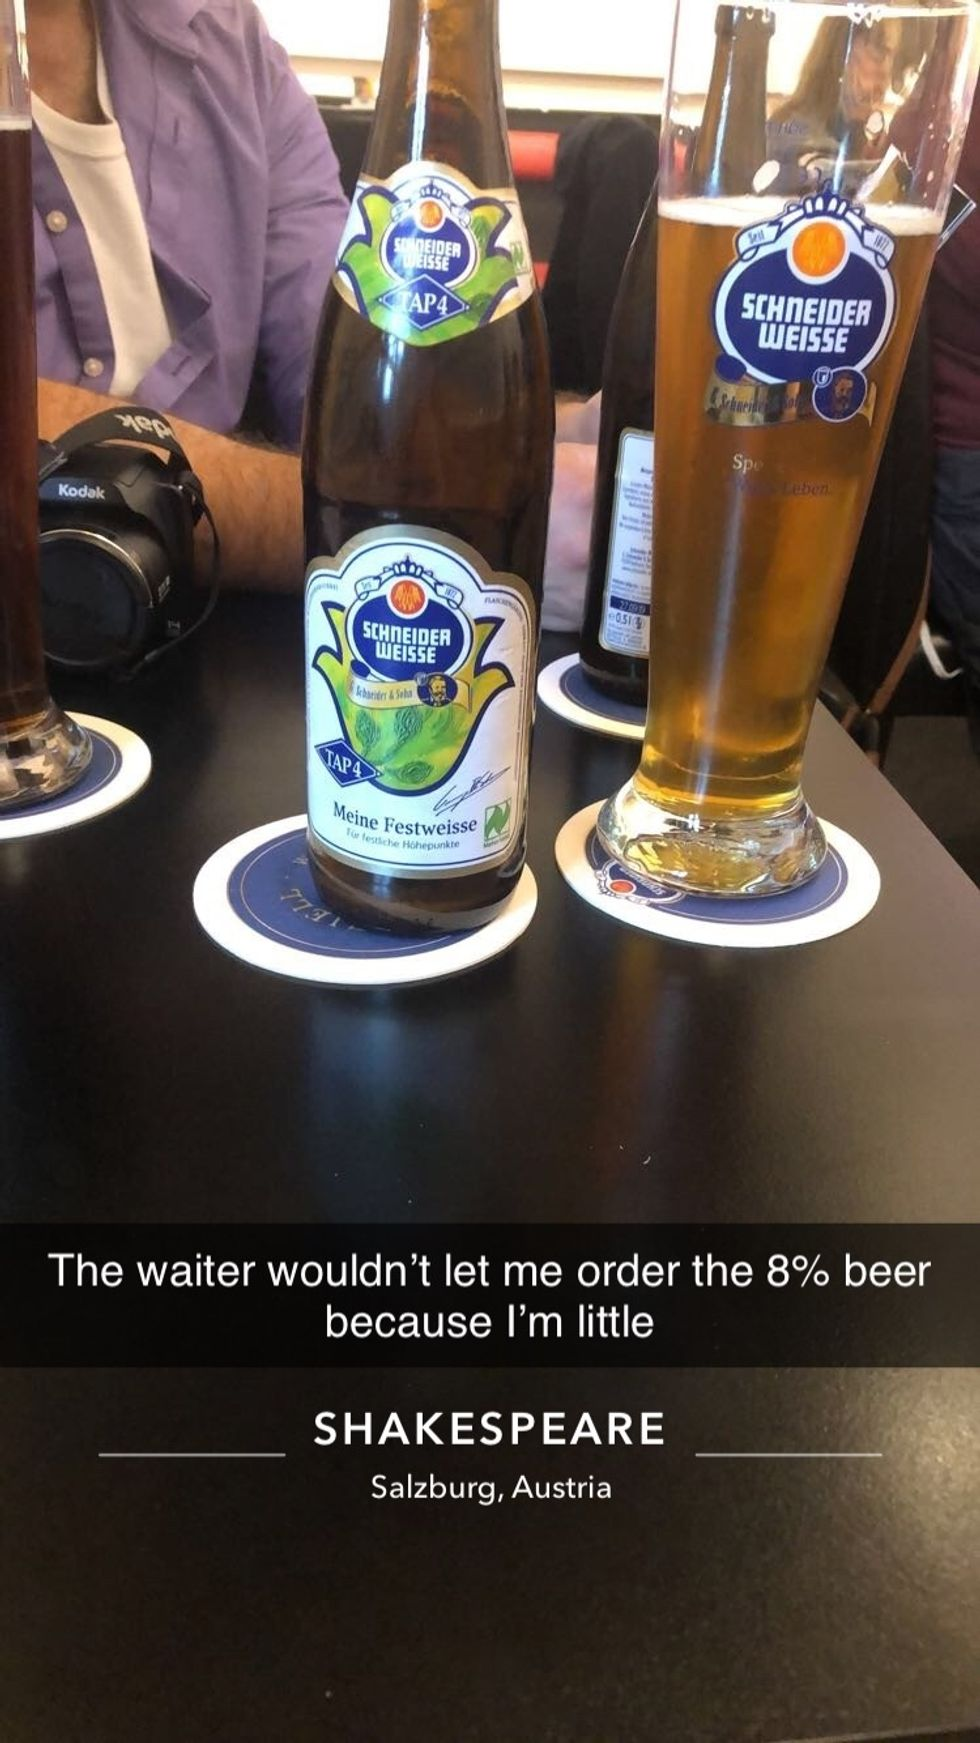 Ordering Beer As A Woman In Austria